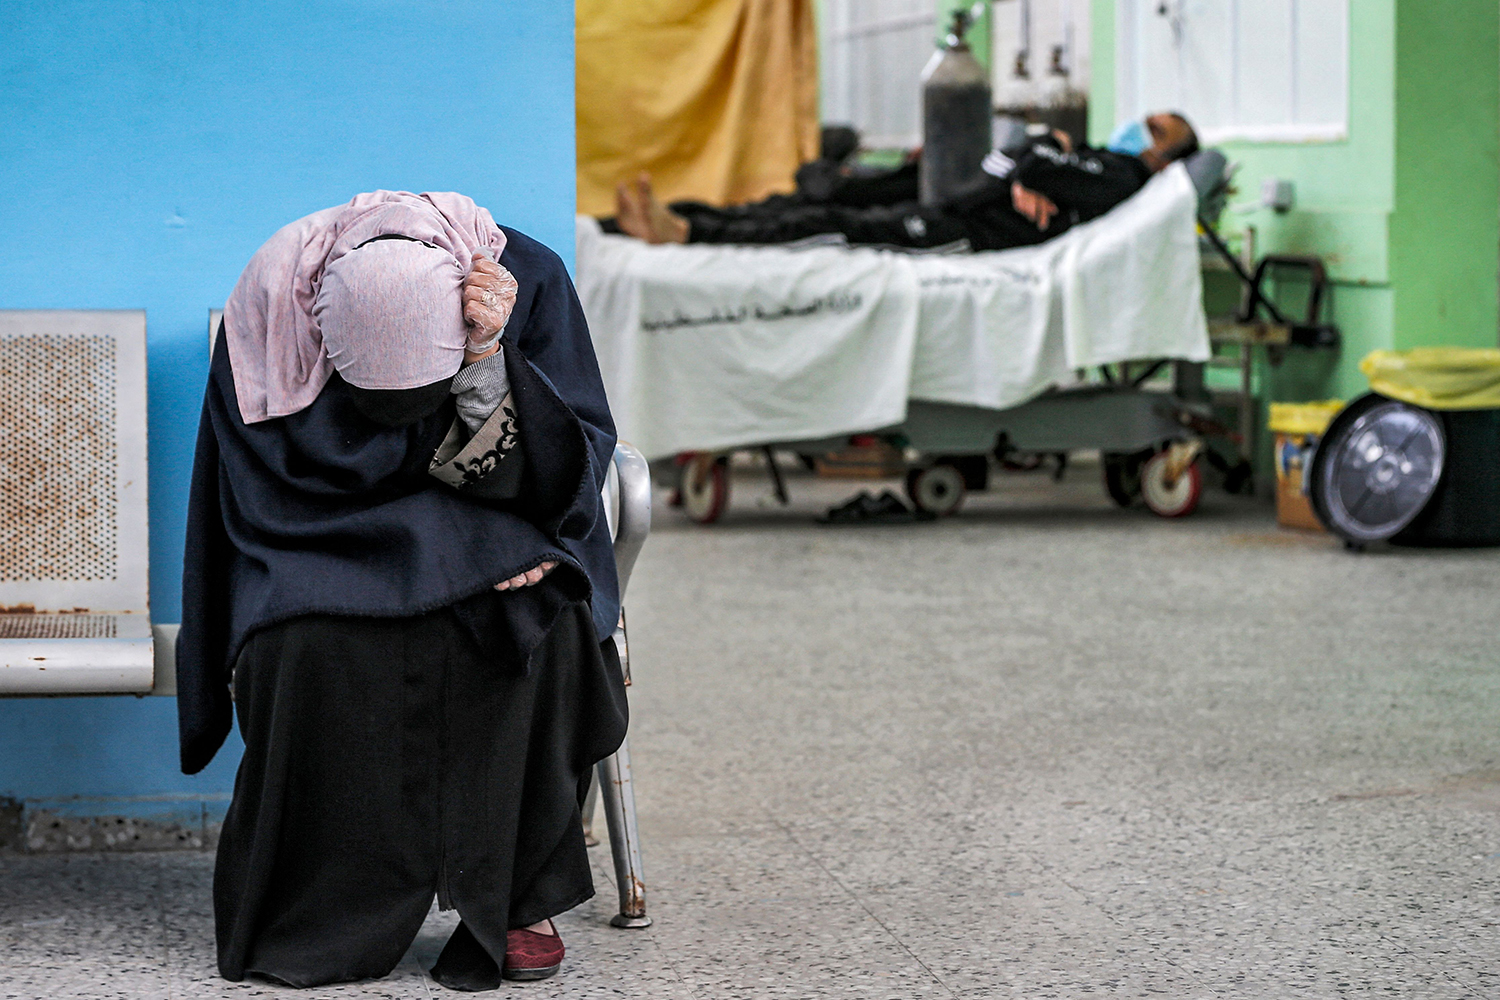 A Palestinian woman waits as her husband, pictured behind her, receives treatment in the COVID-19 intensive care unit of Al-Shifa Hospital in Gaza City on April 7. MAHMUD HAMS/AFP via Getty Images